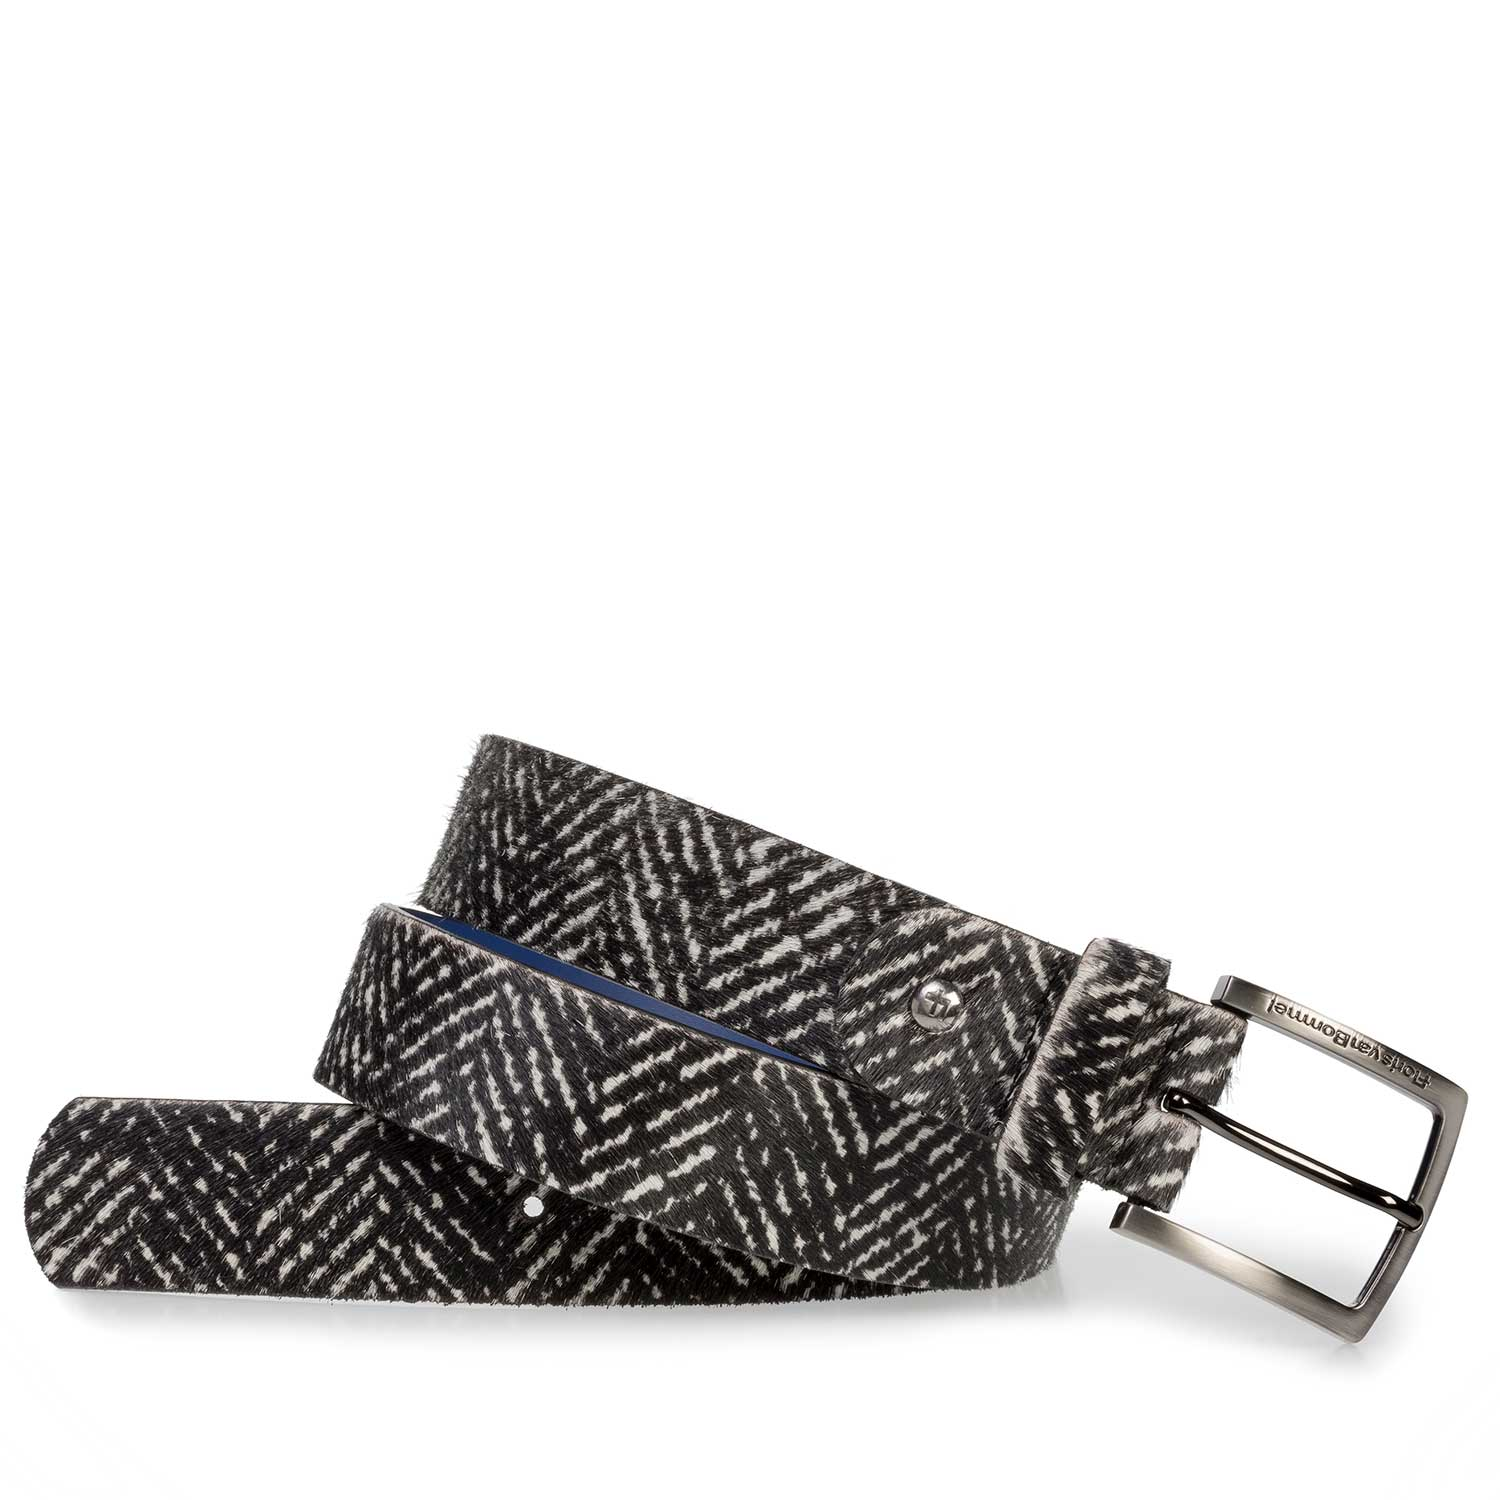 75191/15 - Premium off-white printed pony hair belt